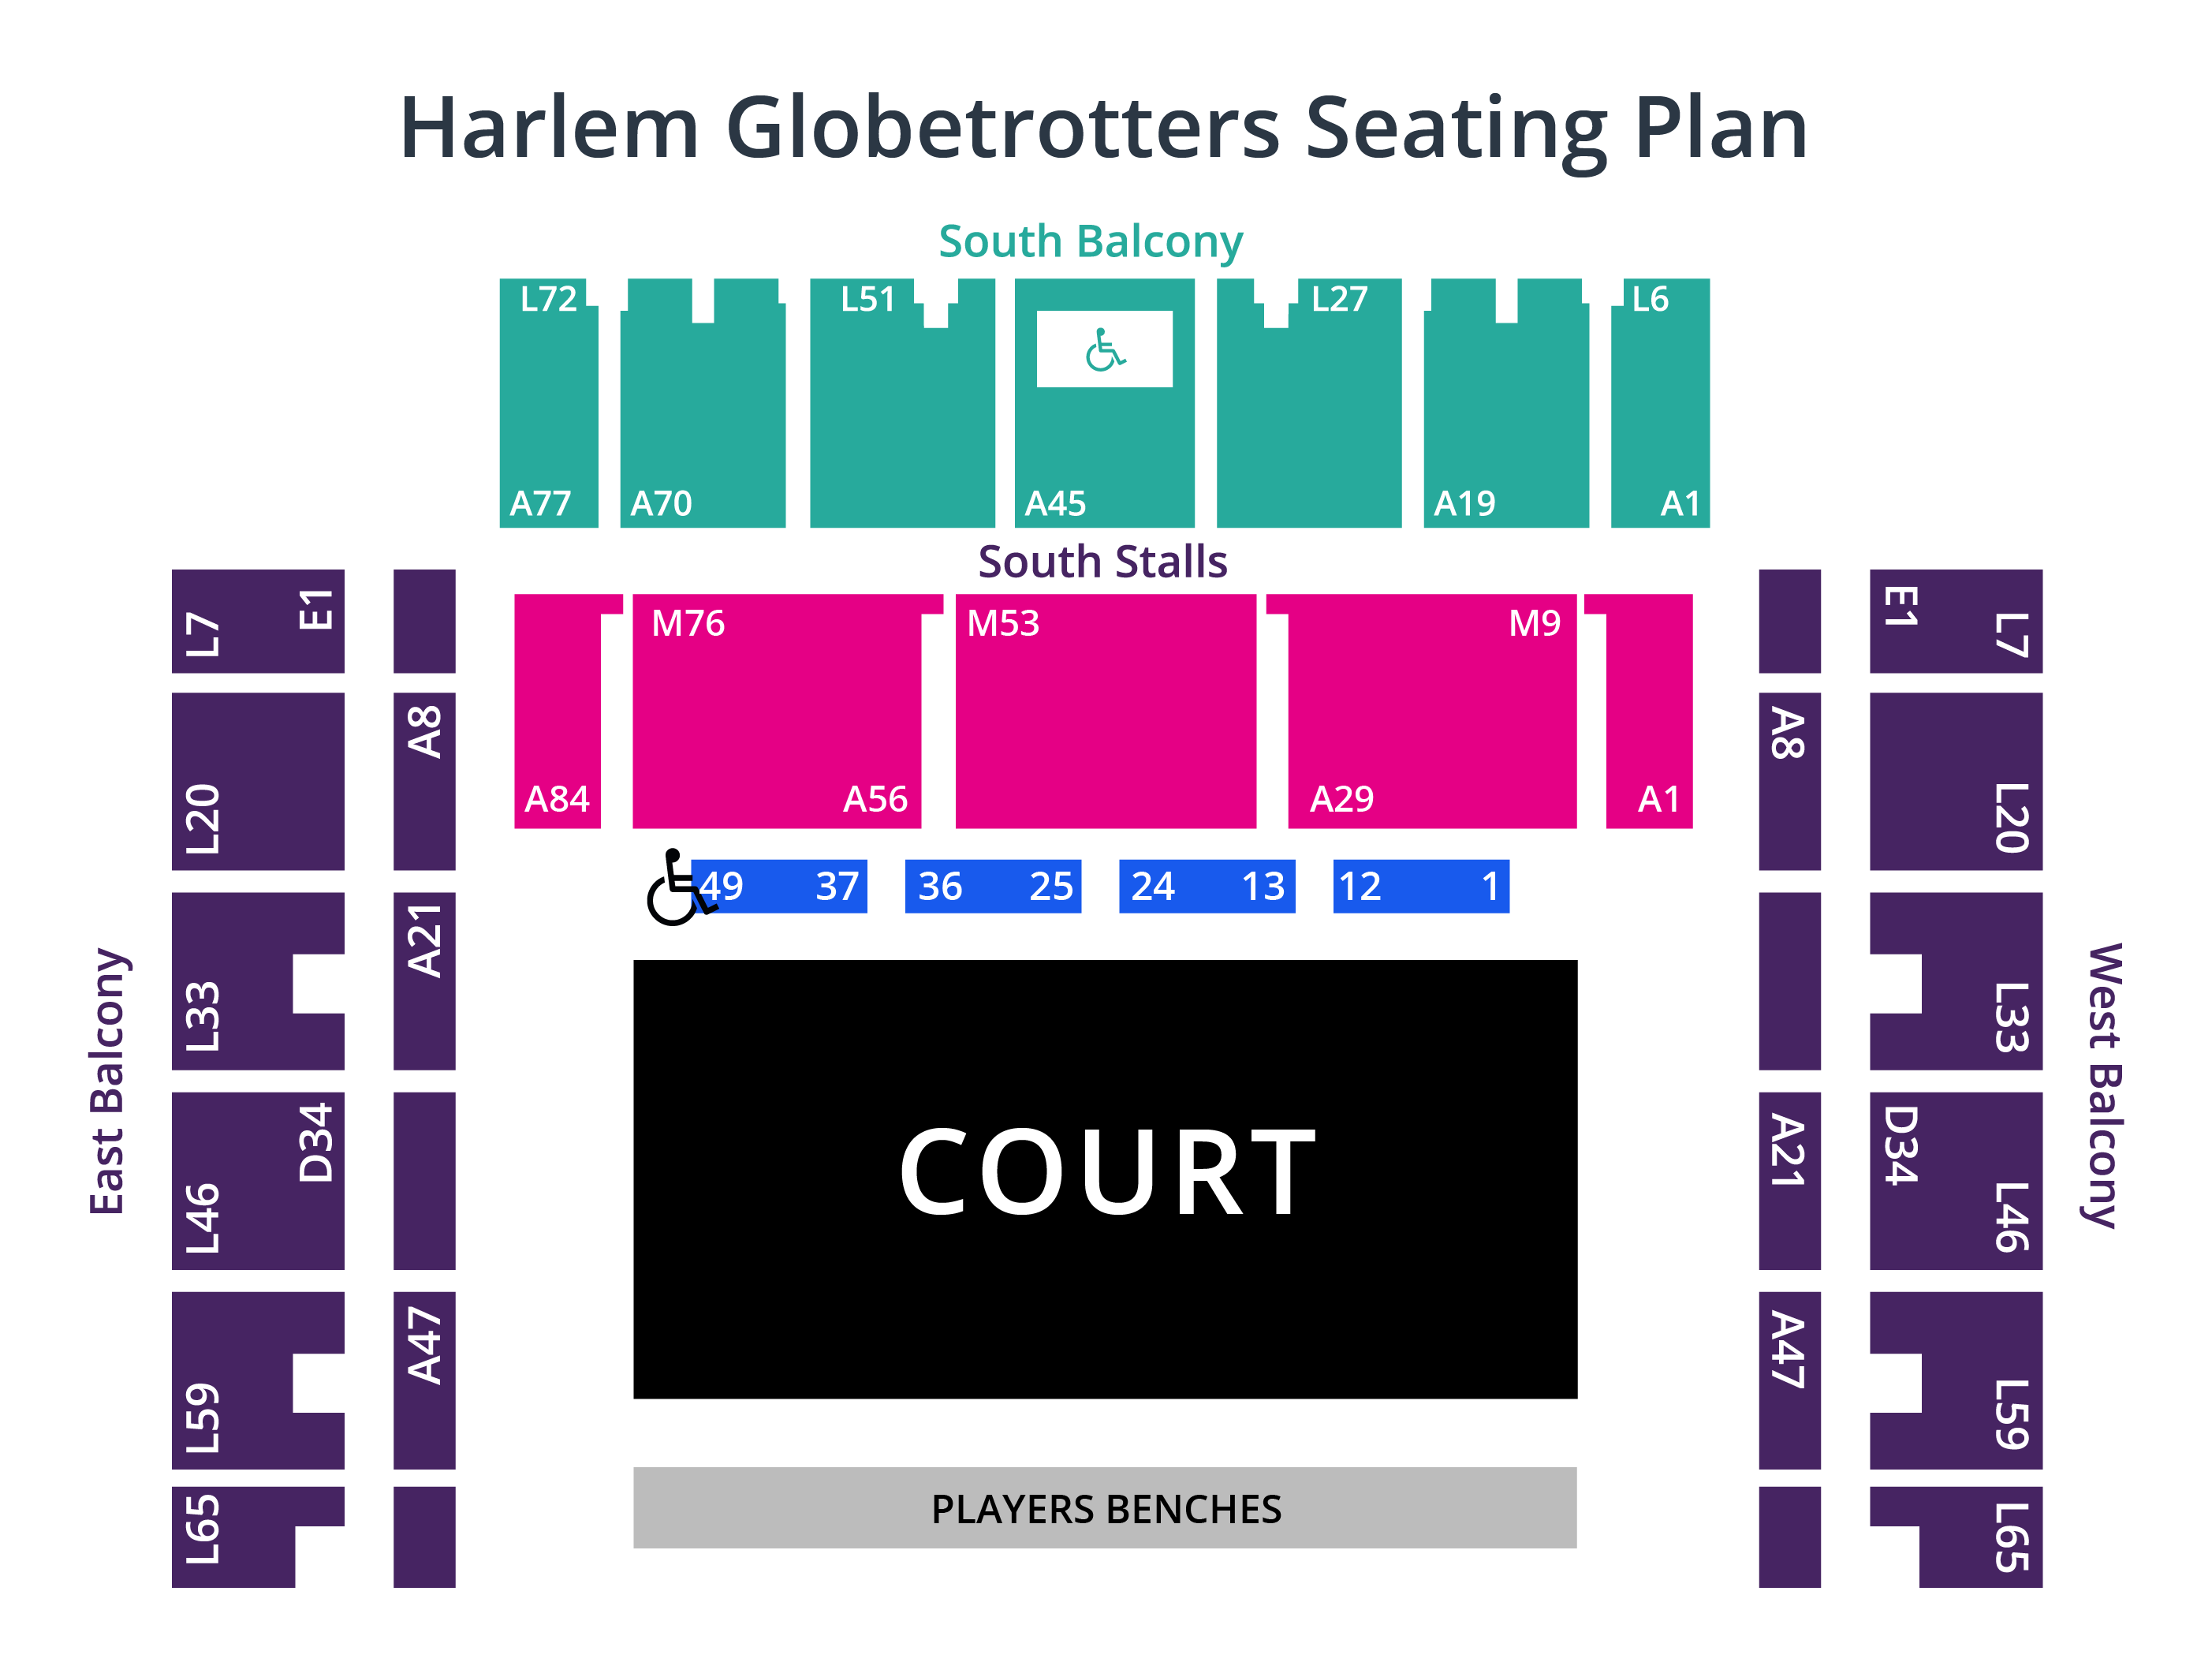 seating-plan-harlem-globetrotters.png